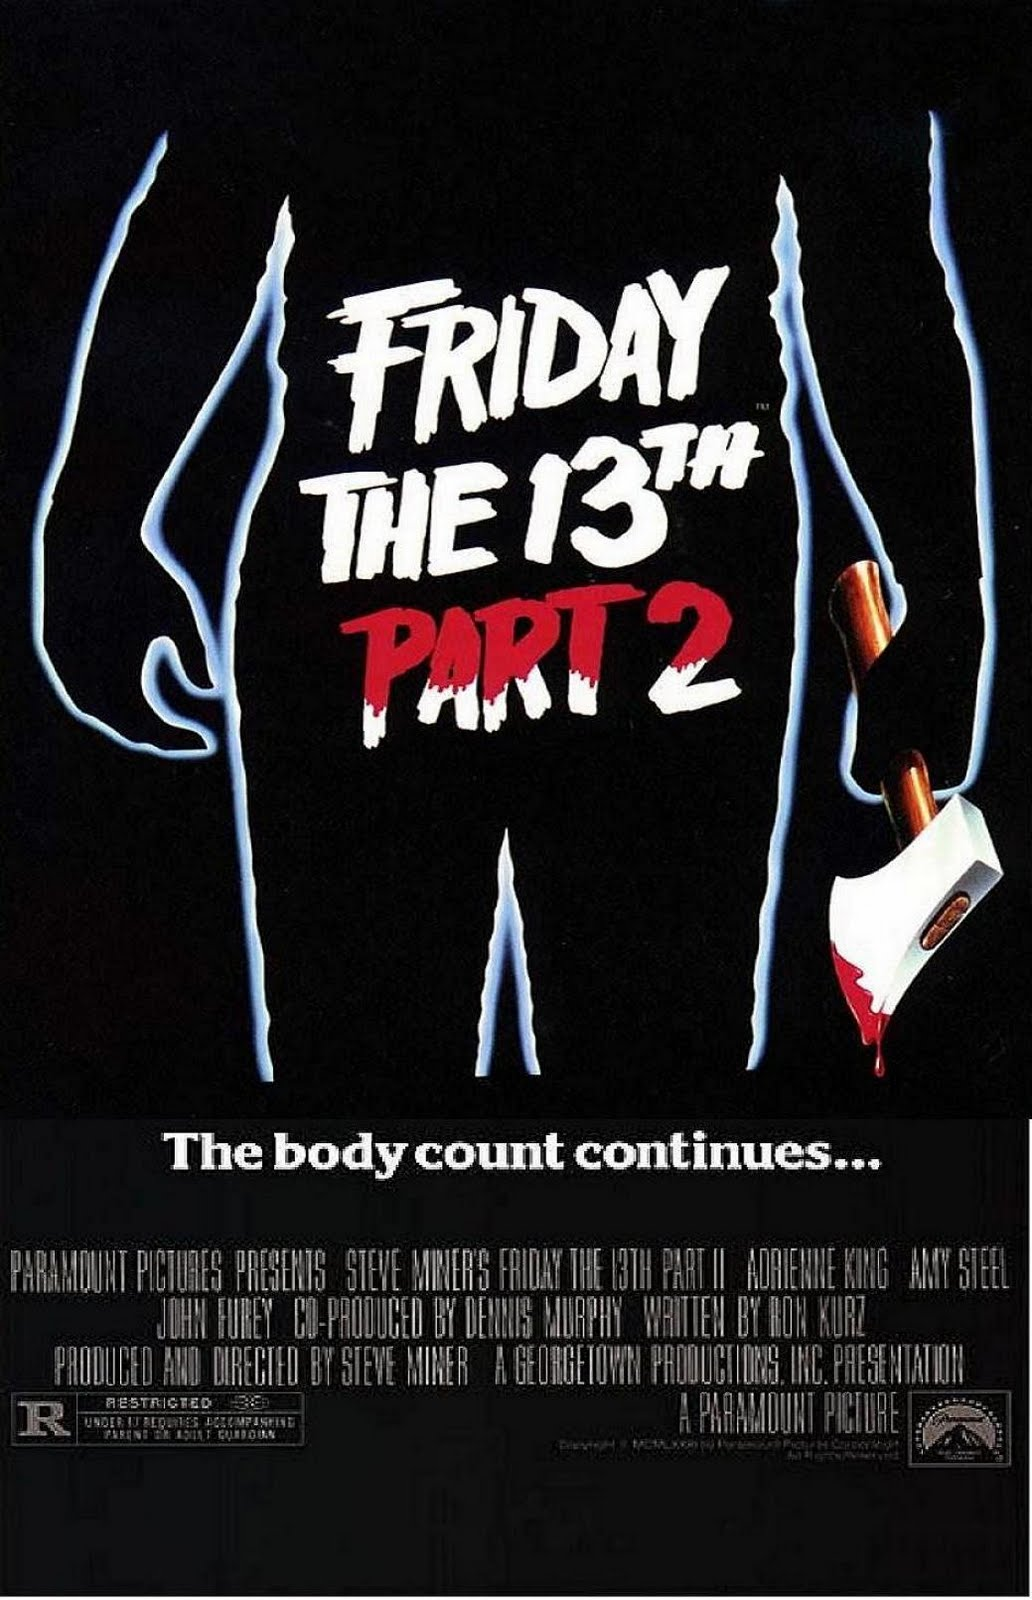 His Delusions of Grandeur: Friday the 13th Marathon Part II